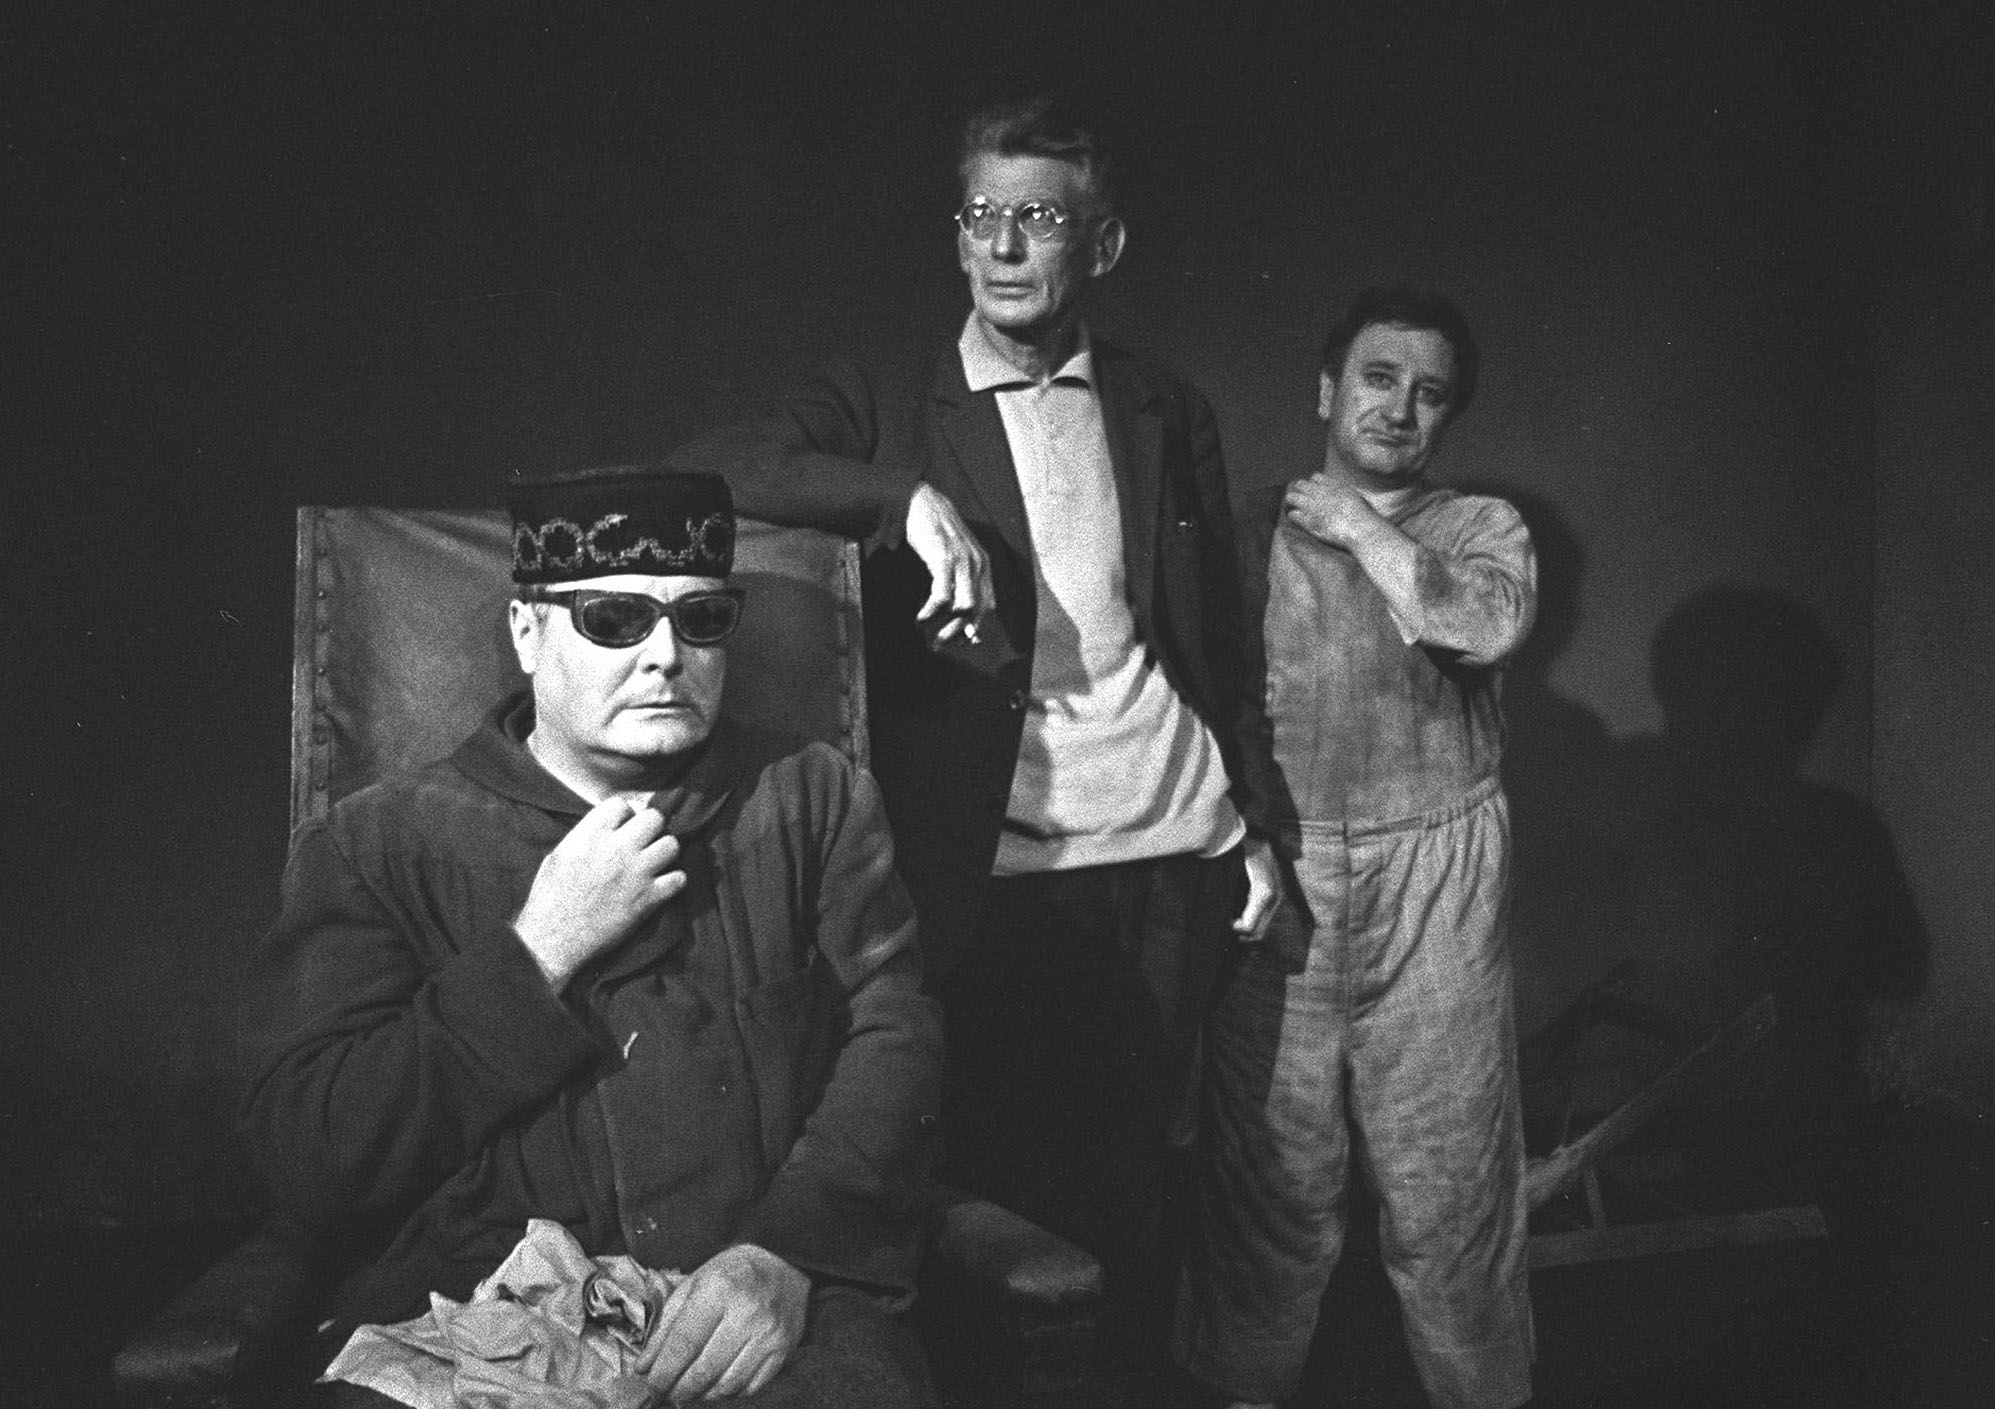 "Samuele Beckett. On the occasion of West Berlin Festival Weeks the workshop of Schiller theatre will give ""Fin de Partie"" of Samuel Beckett. Here the author who is also directing the game is giving instructions to the actord. Left Ernst Schroeder (Hamm), right Horst Bollmann (Clov). First performance is on September 26. 1967 SAMUEL BECKETT'S ""FIN DE PARTIE"" SCHILLER THEATRE, BERLIN, Germany"